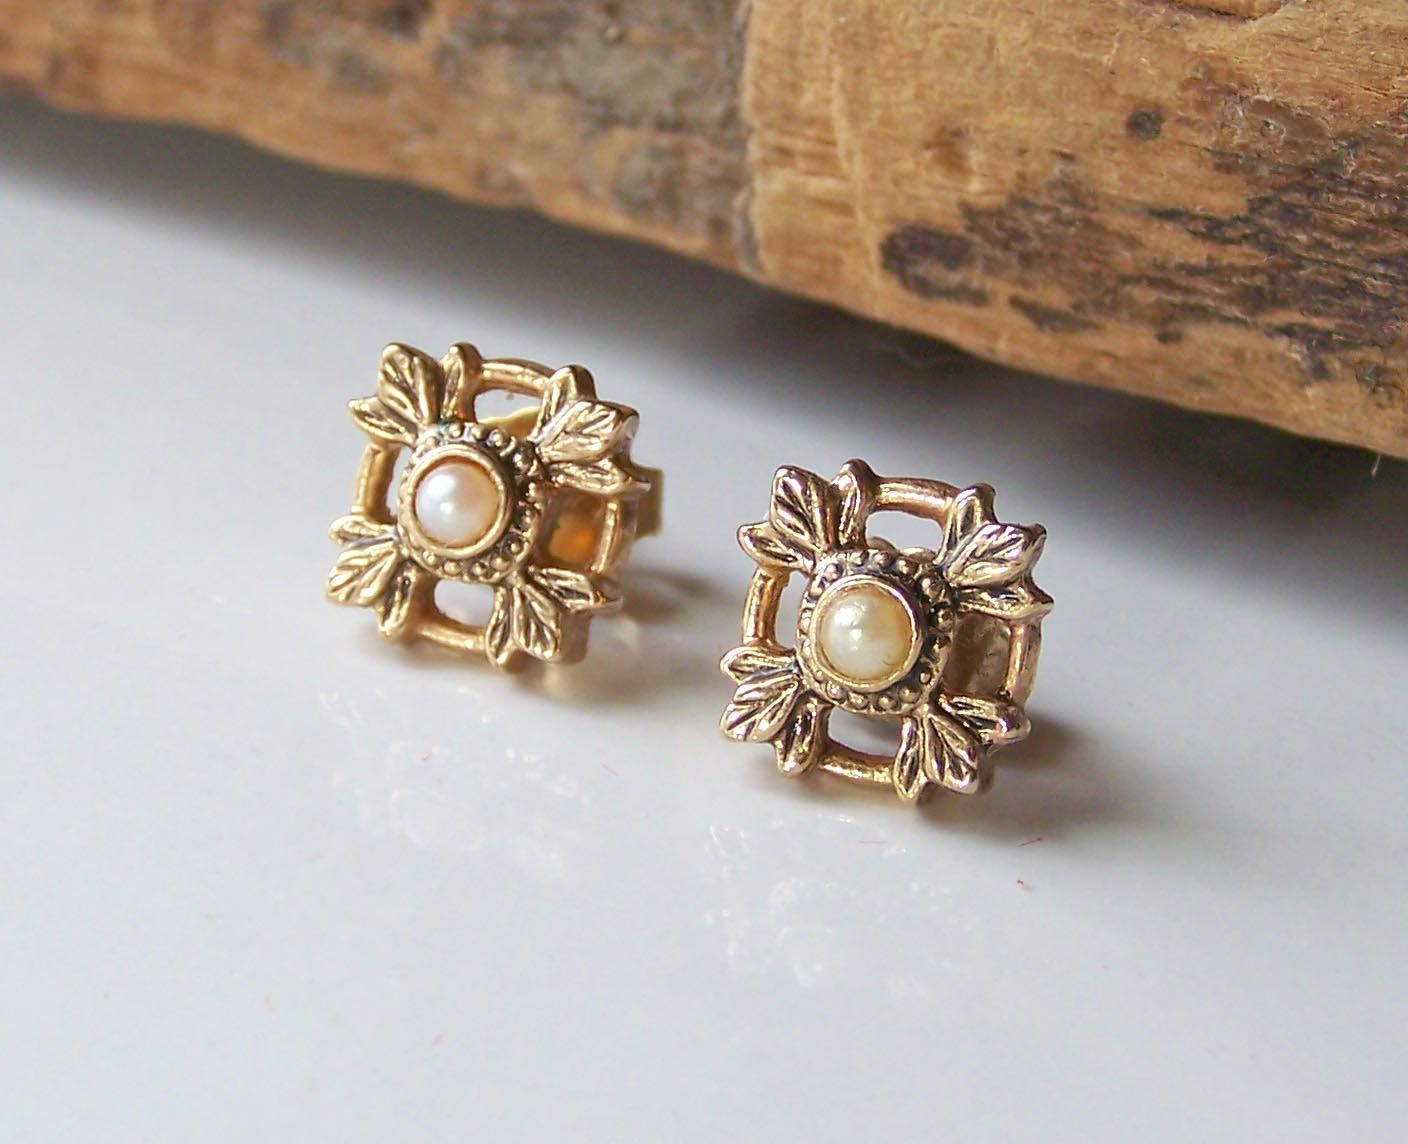 Etsy Etsy Jewelry Vintage Jewelry Post Earrings by alysbeads